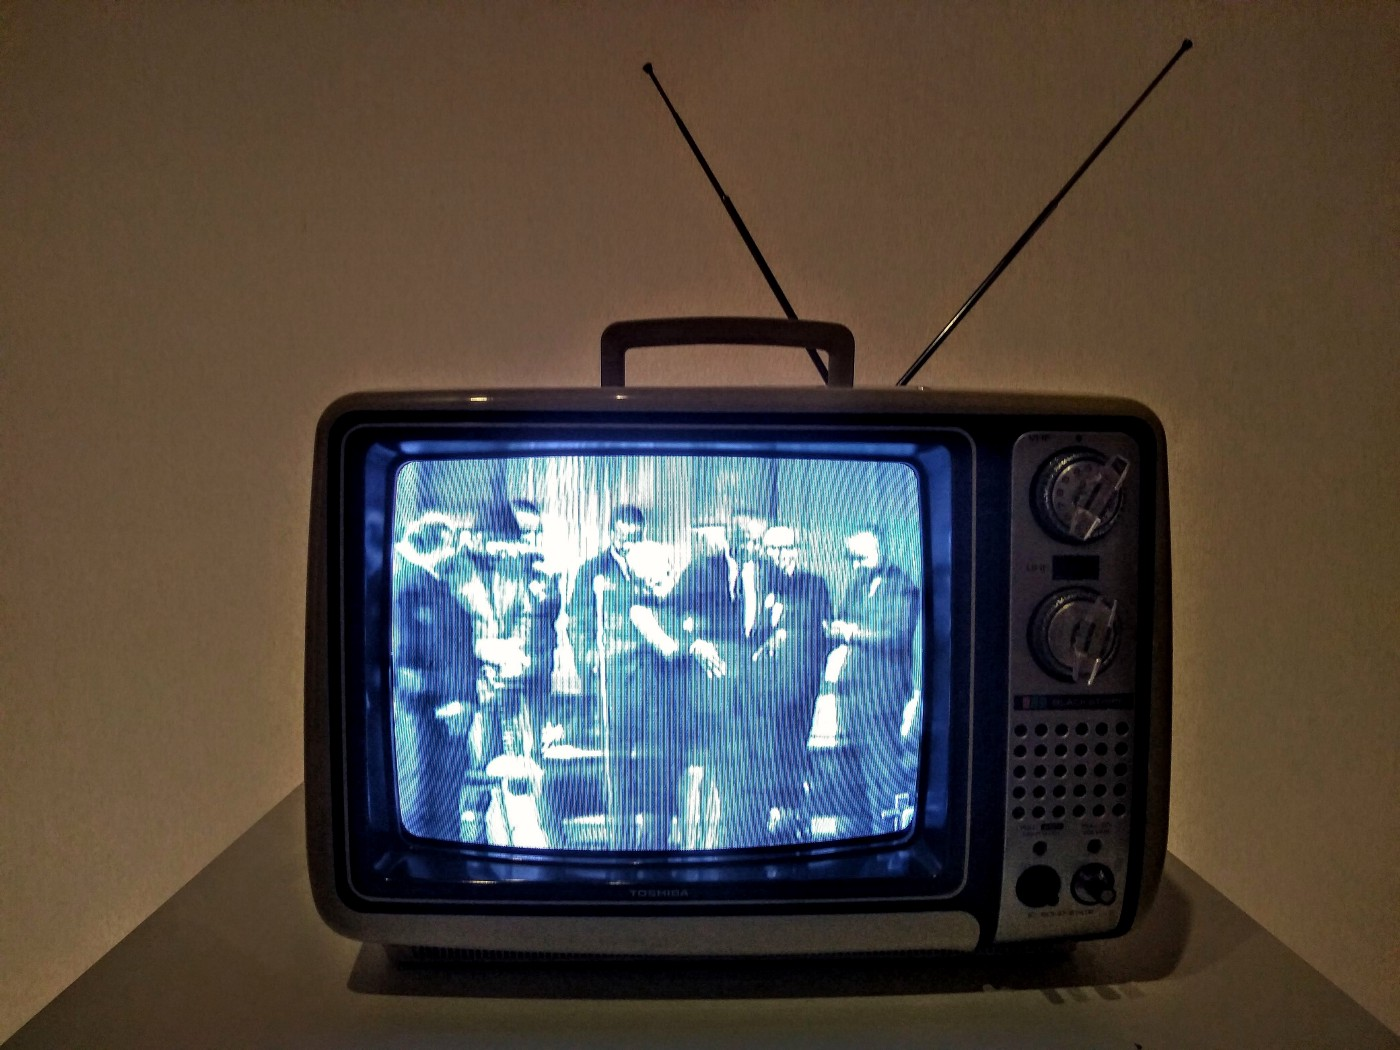 A black and white television with antenna